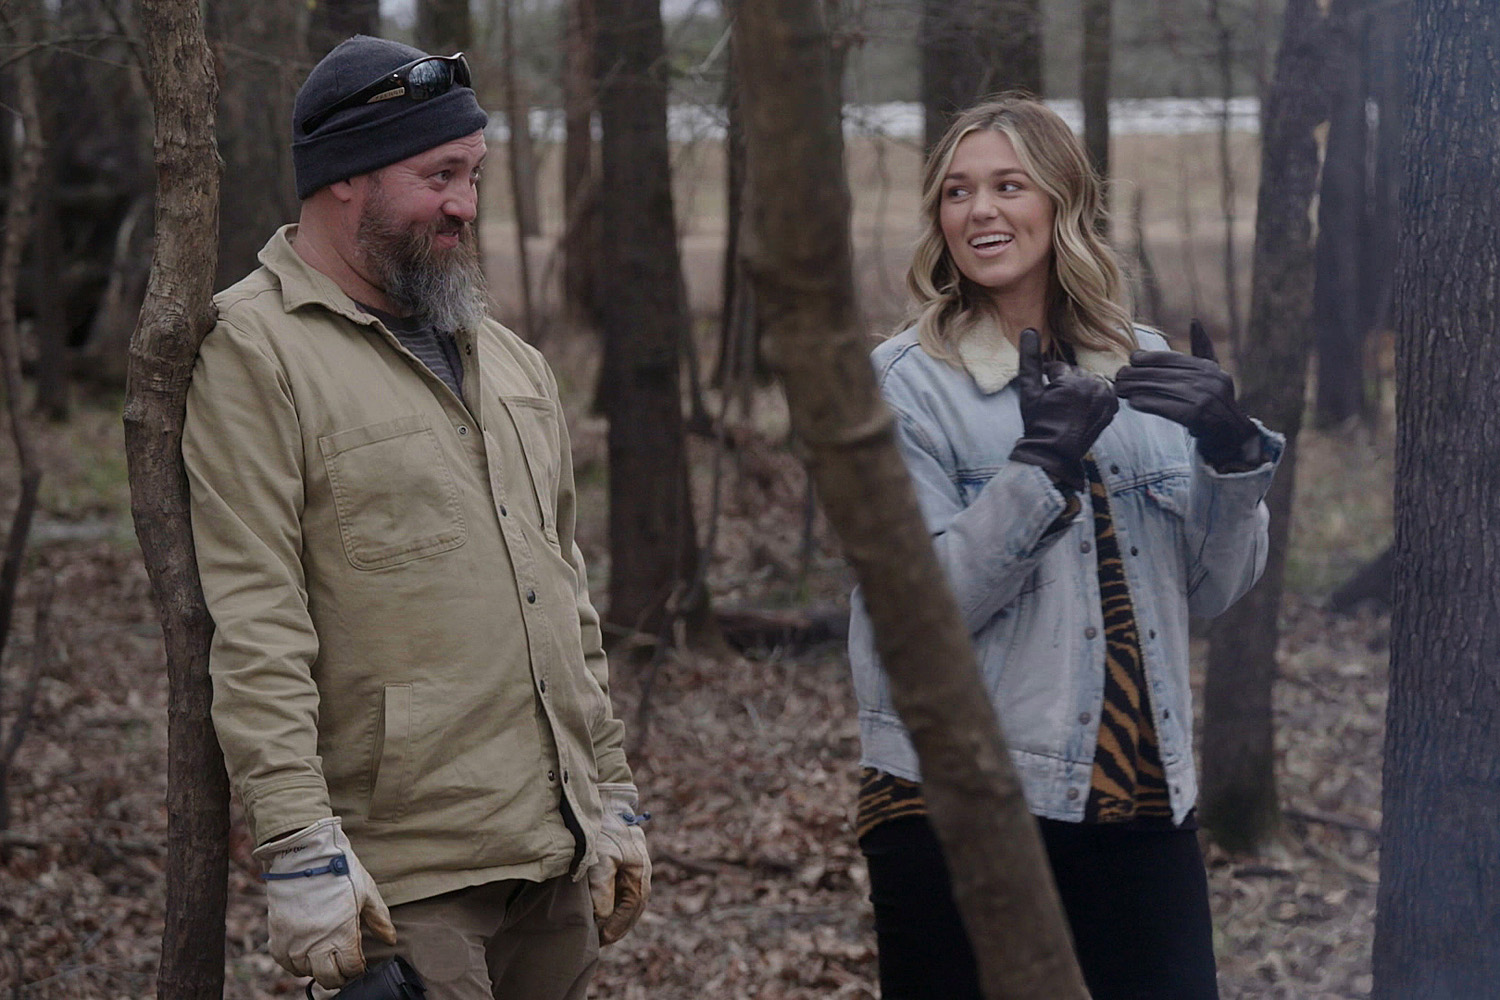 Duck Dynasty's Willie and Korie Robertson Talk Big Issues in 'At Home with the Robertsons' Series